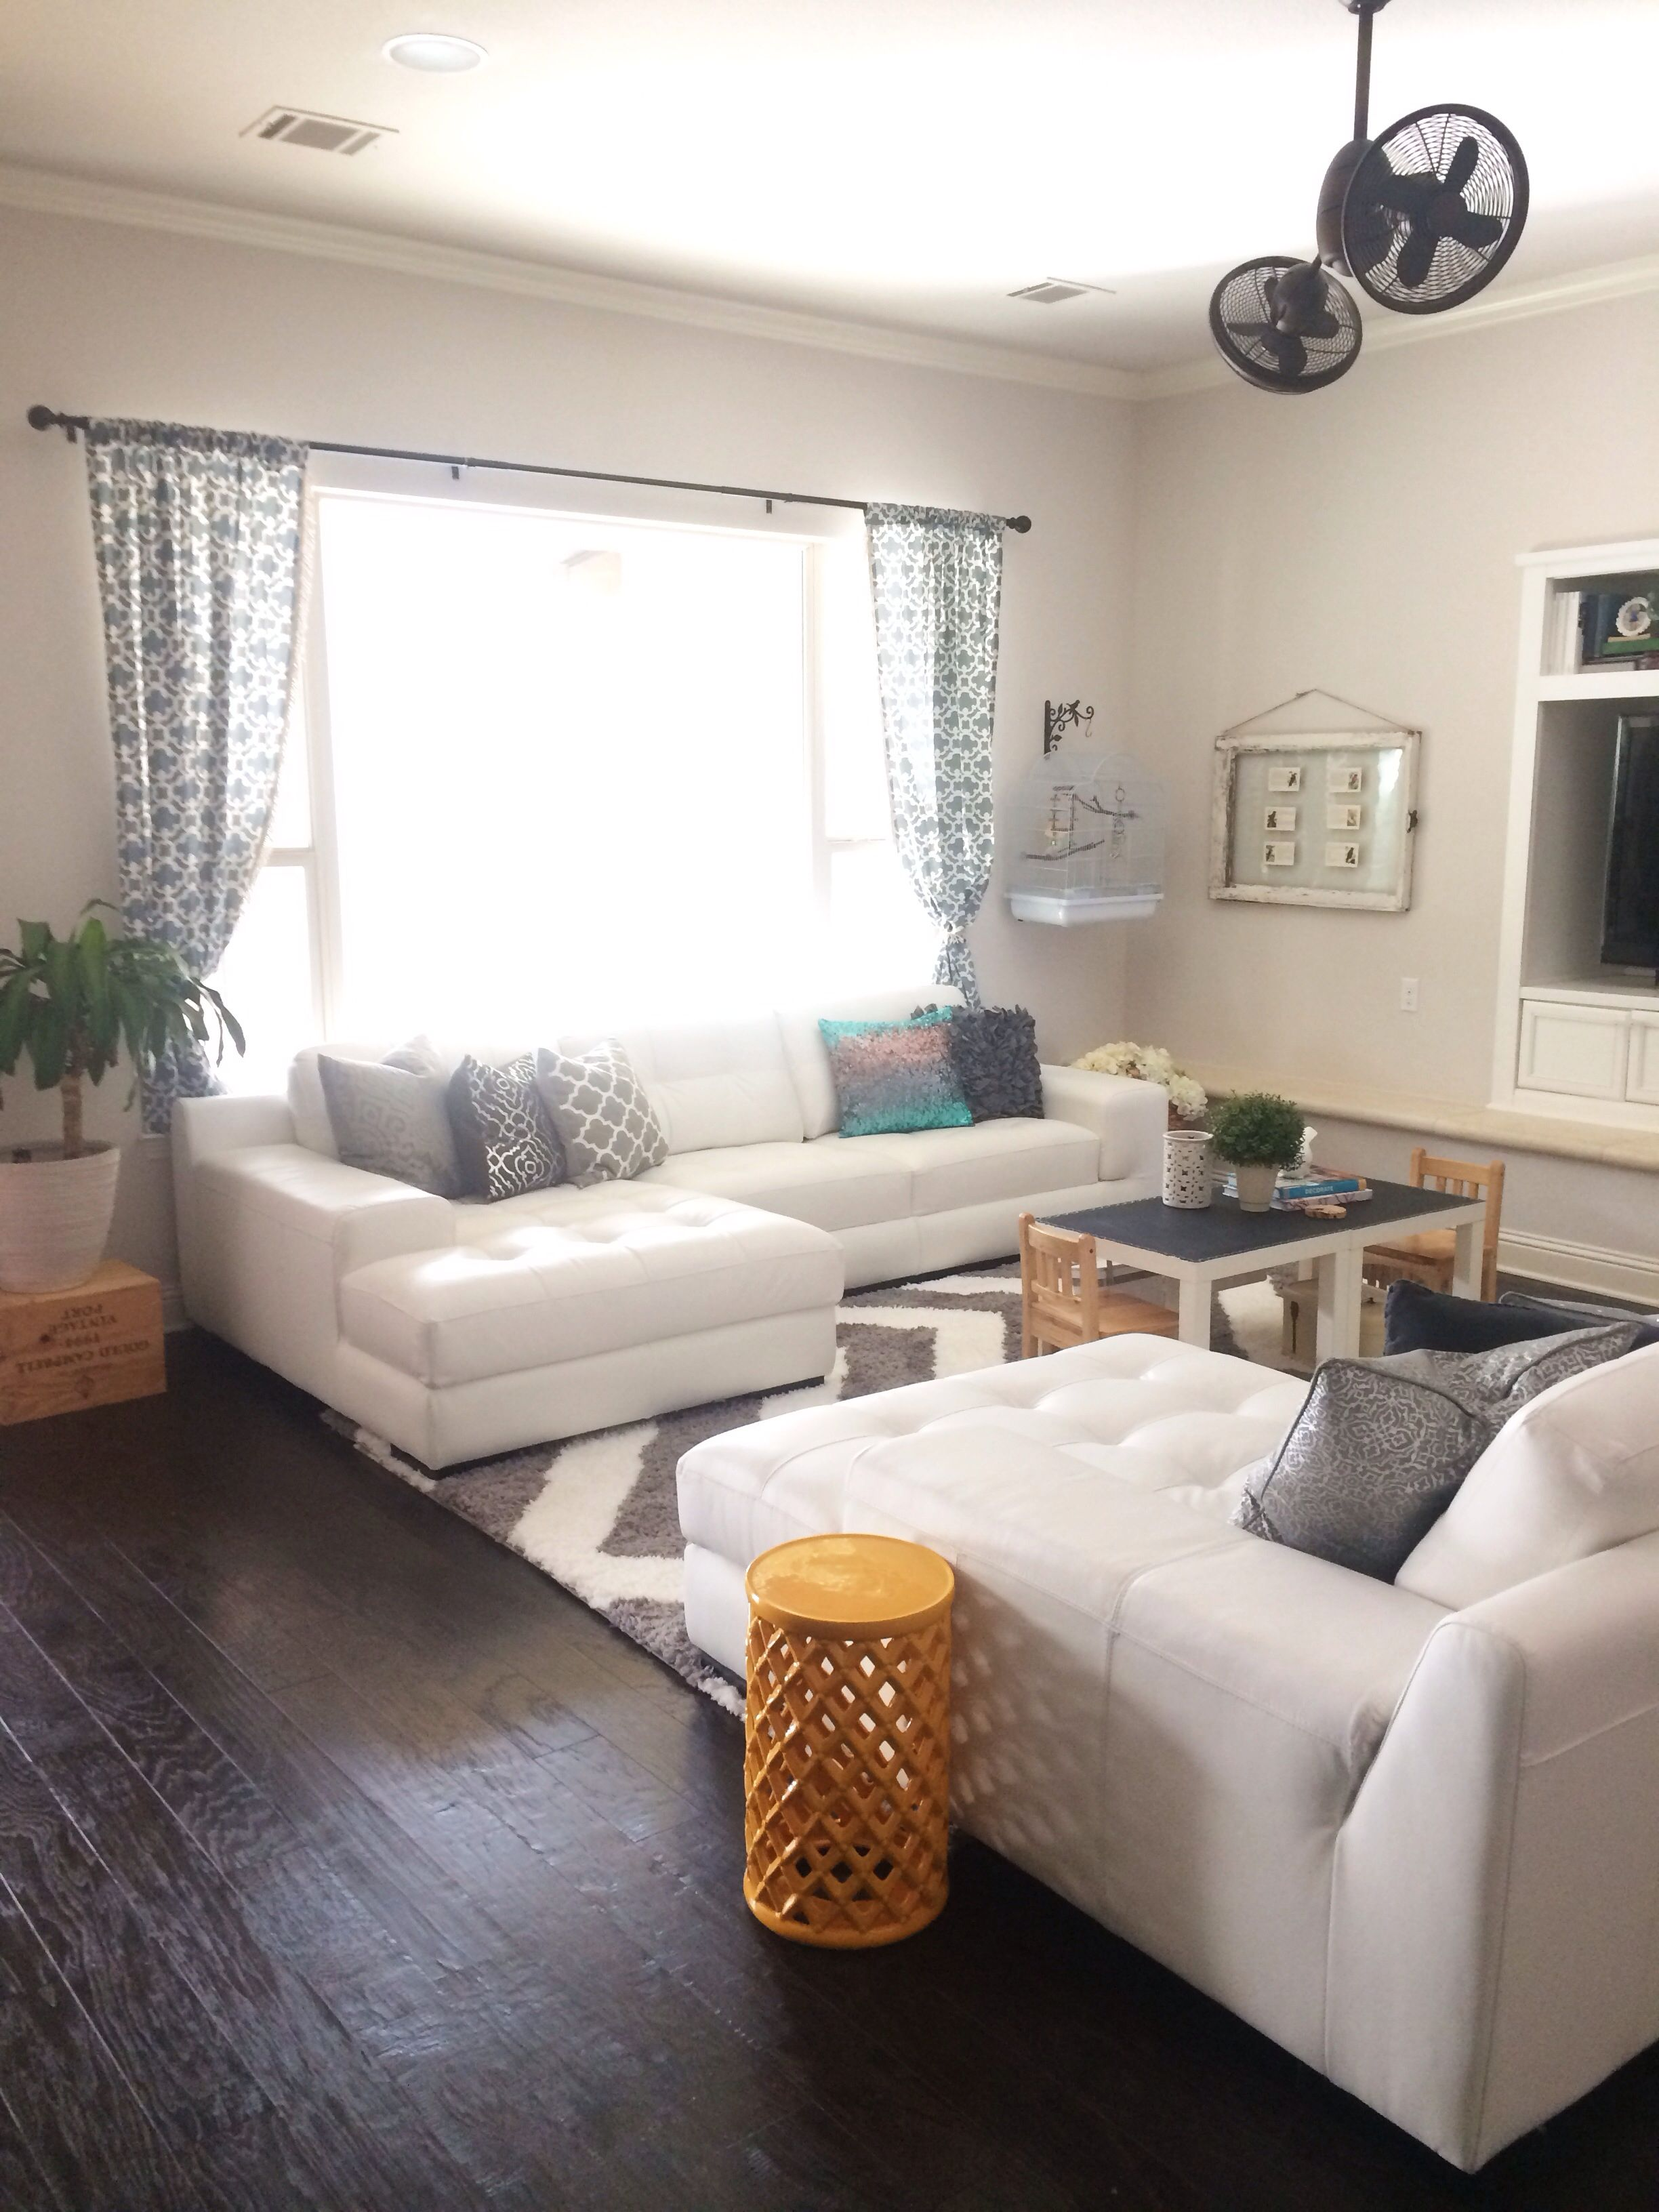 How To Decorate My Living Room With A Sectional Seating 2 Leather Sectionals Facing Each Other